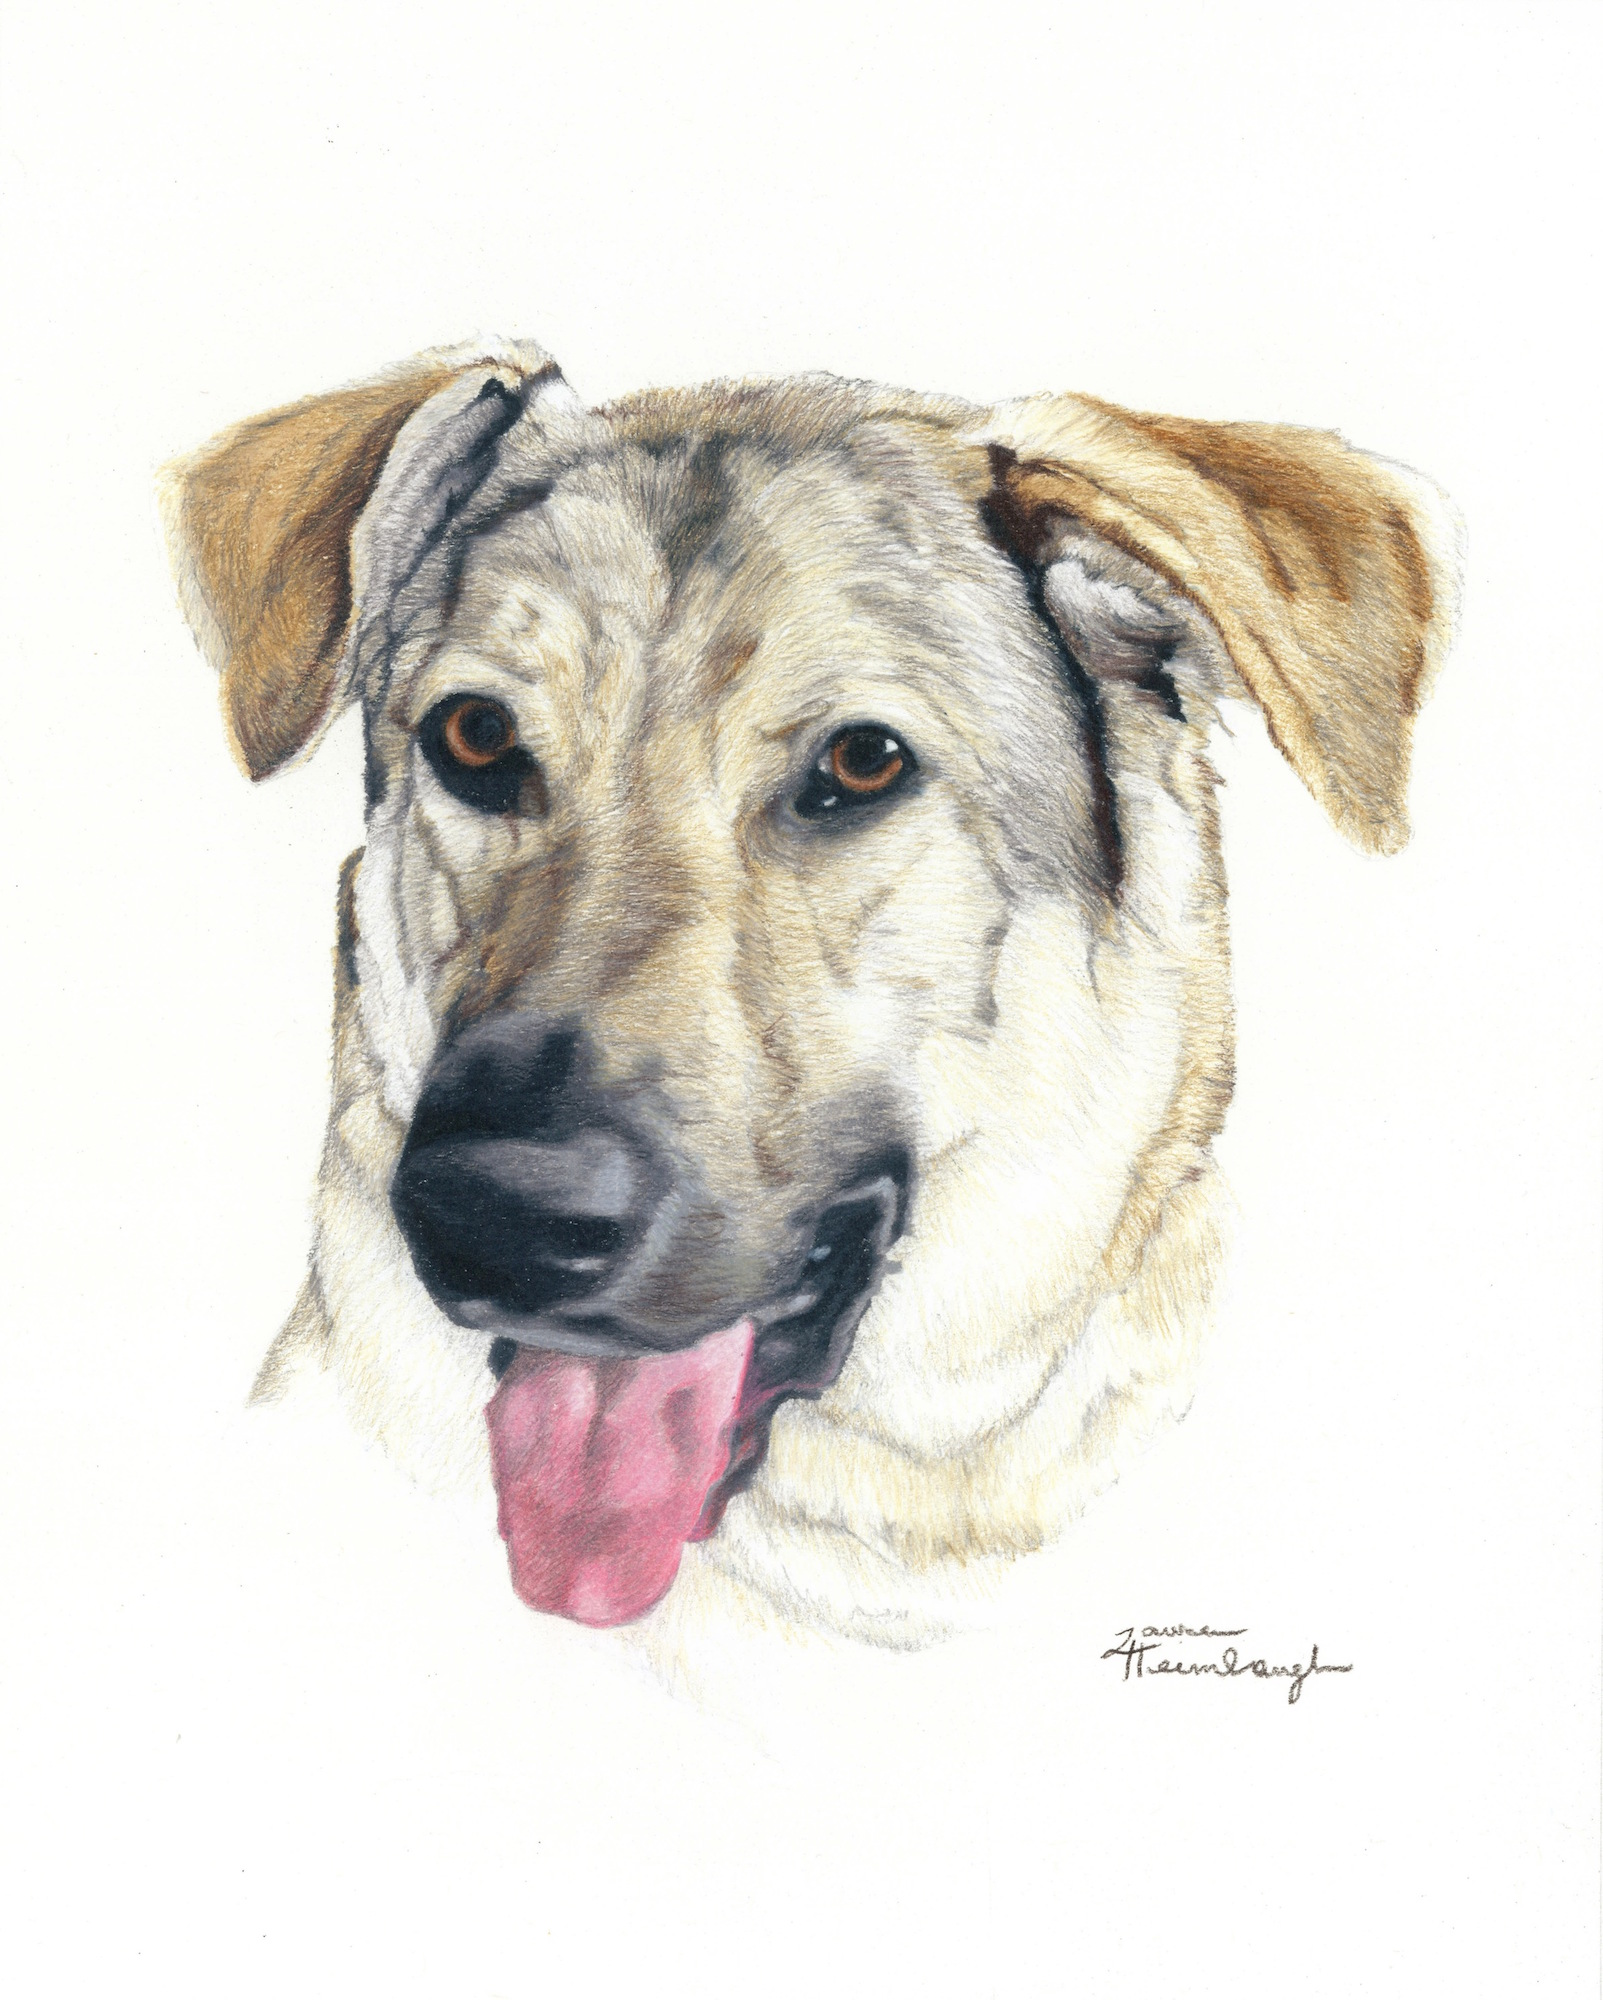 Zeus the Anatolian Shepherd (2013)